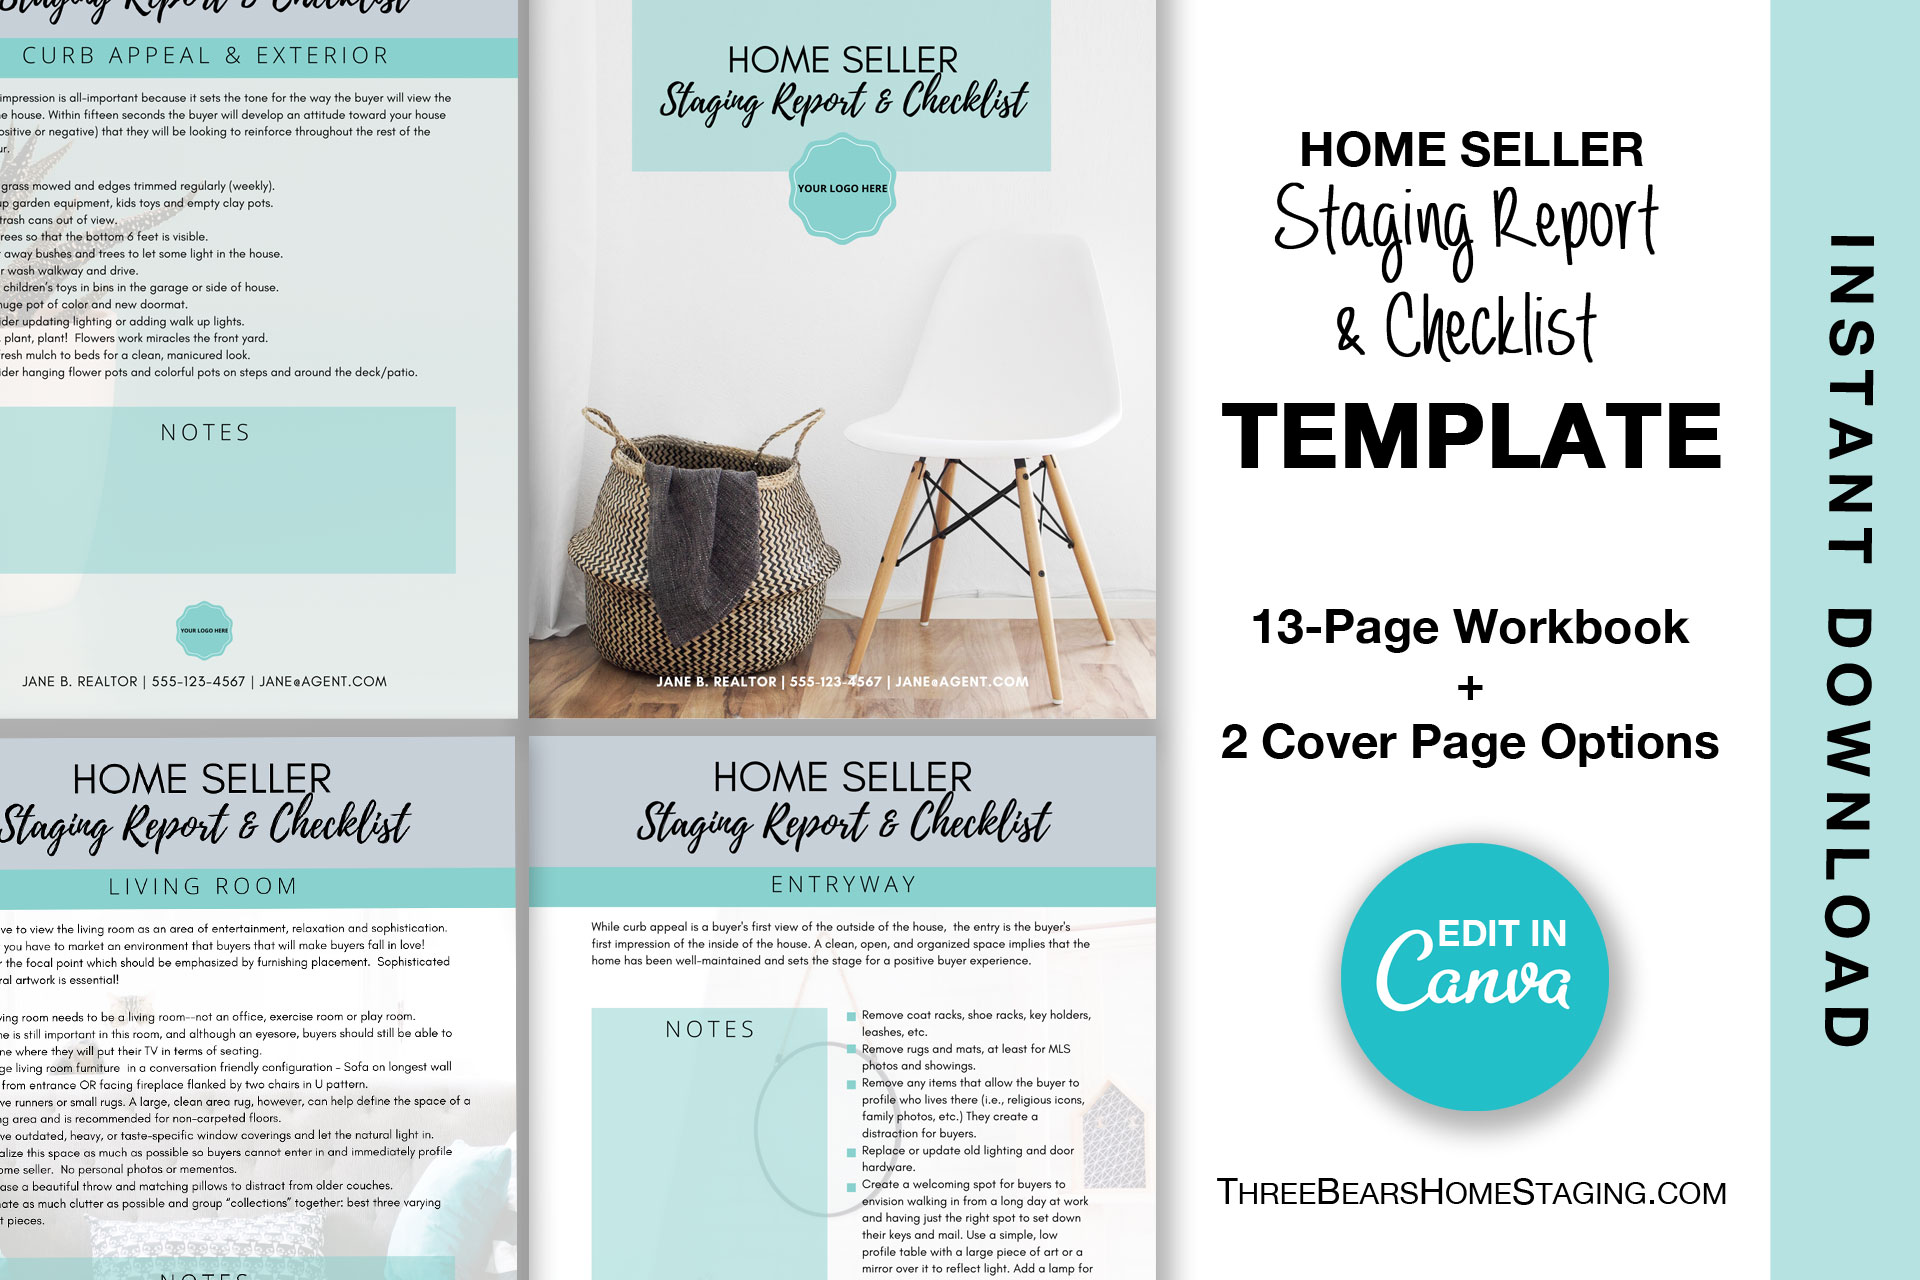 Home Staging Report And Checklist Workbook Template Three Bears Home Staging,Minimalist Computer Desk Design Ideas